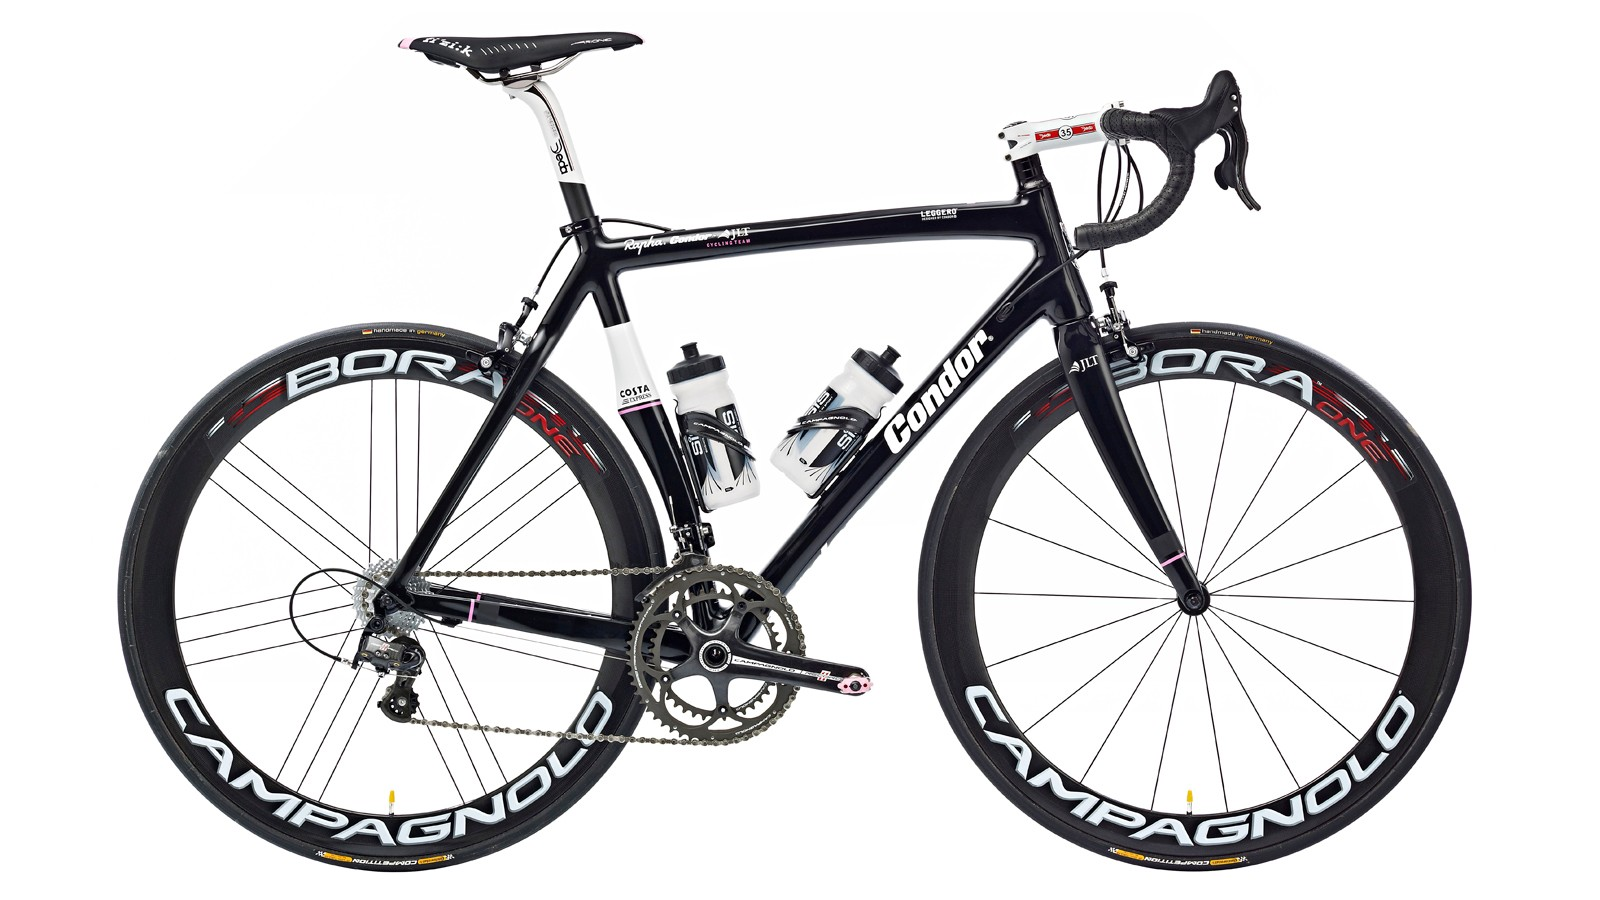 Condor's Leggero is designed for stiffness and suppleness in pursuit of victory